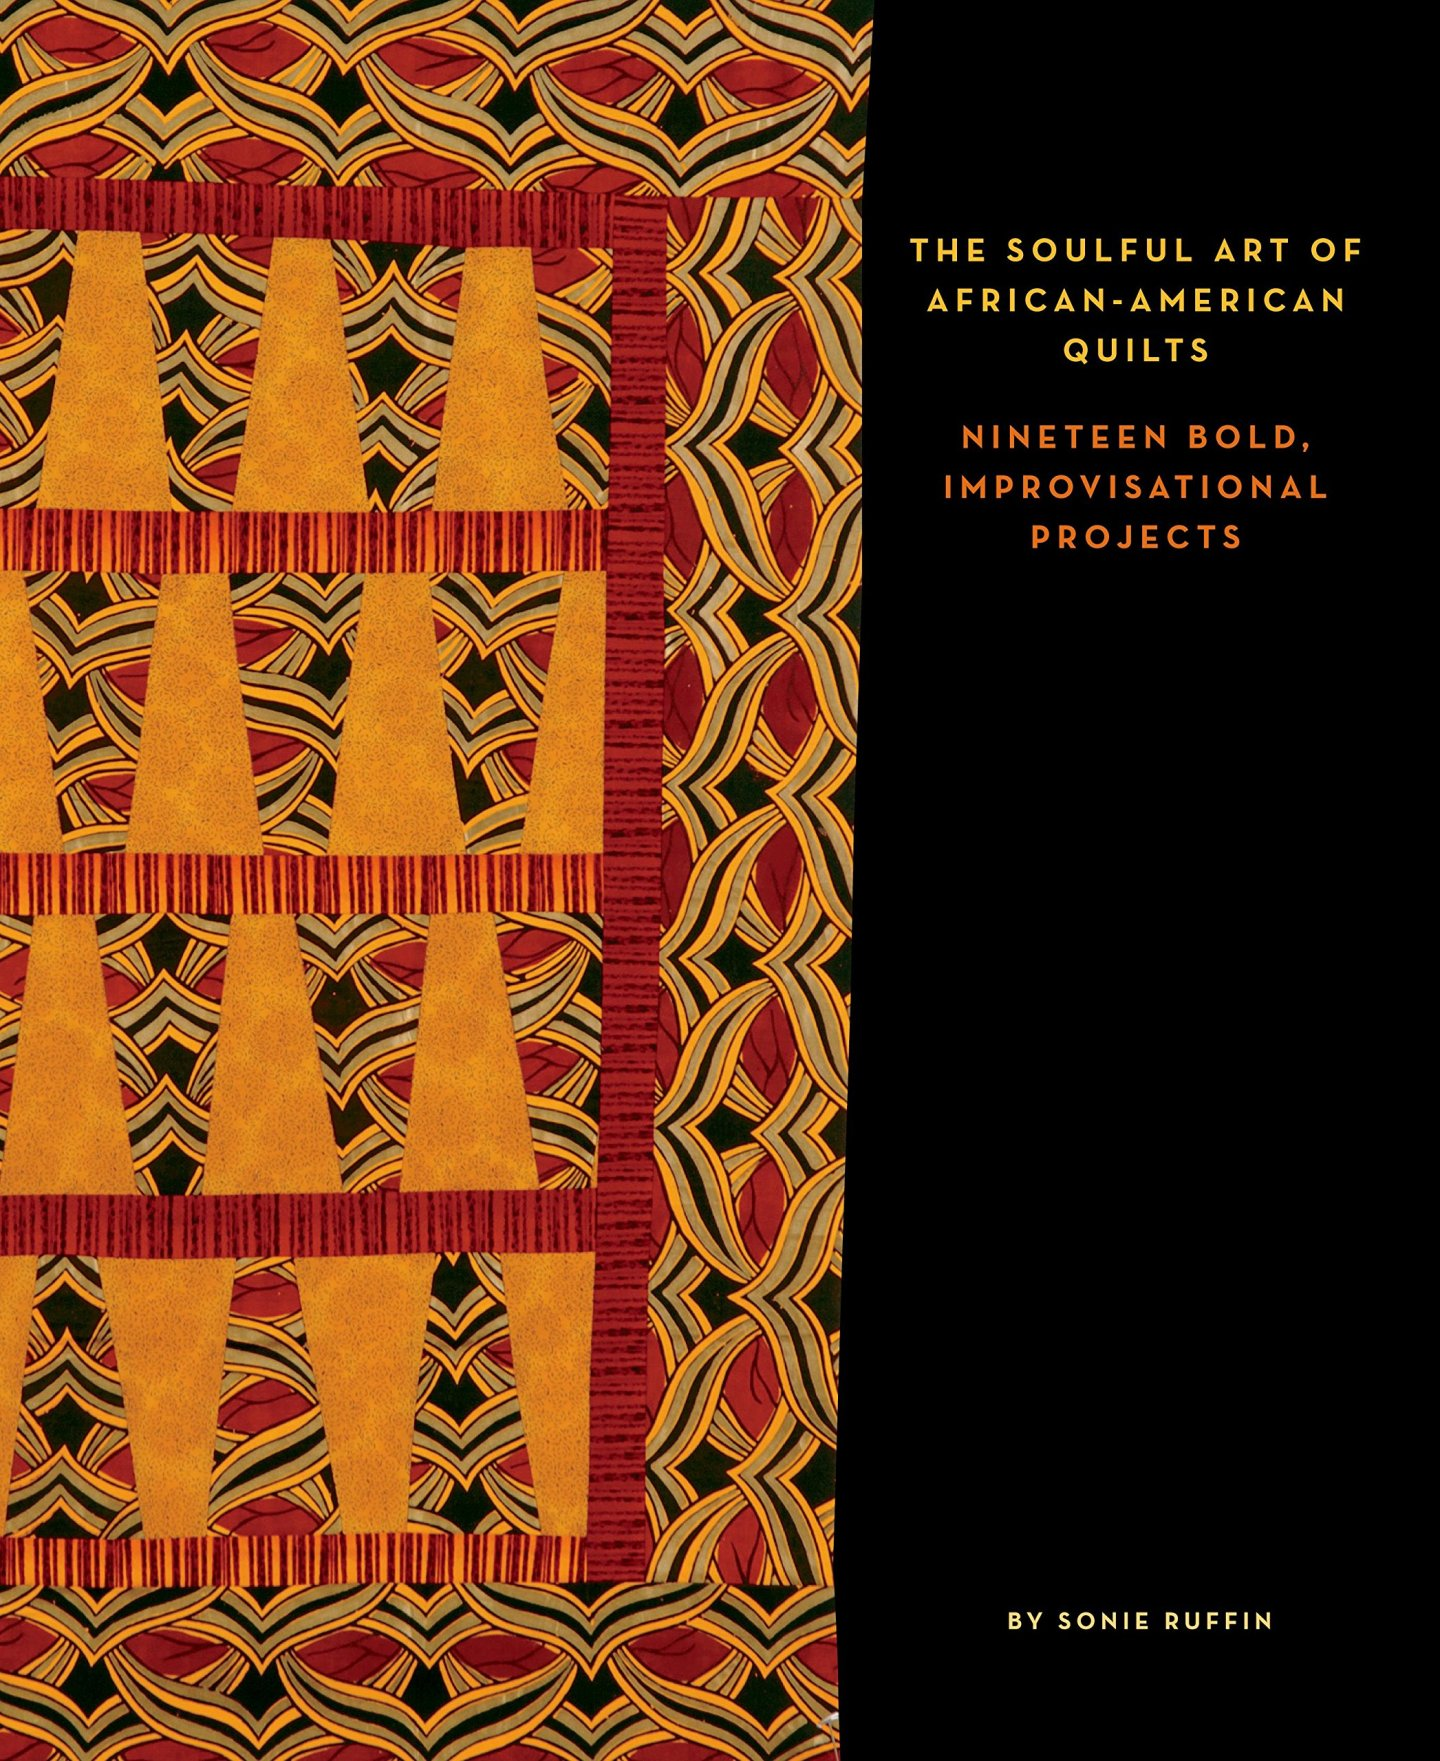 91SBY-Cu4OL-1440x1761 Books to Explore: African American Quilts